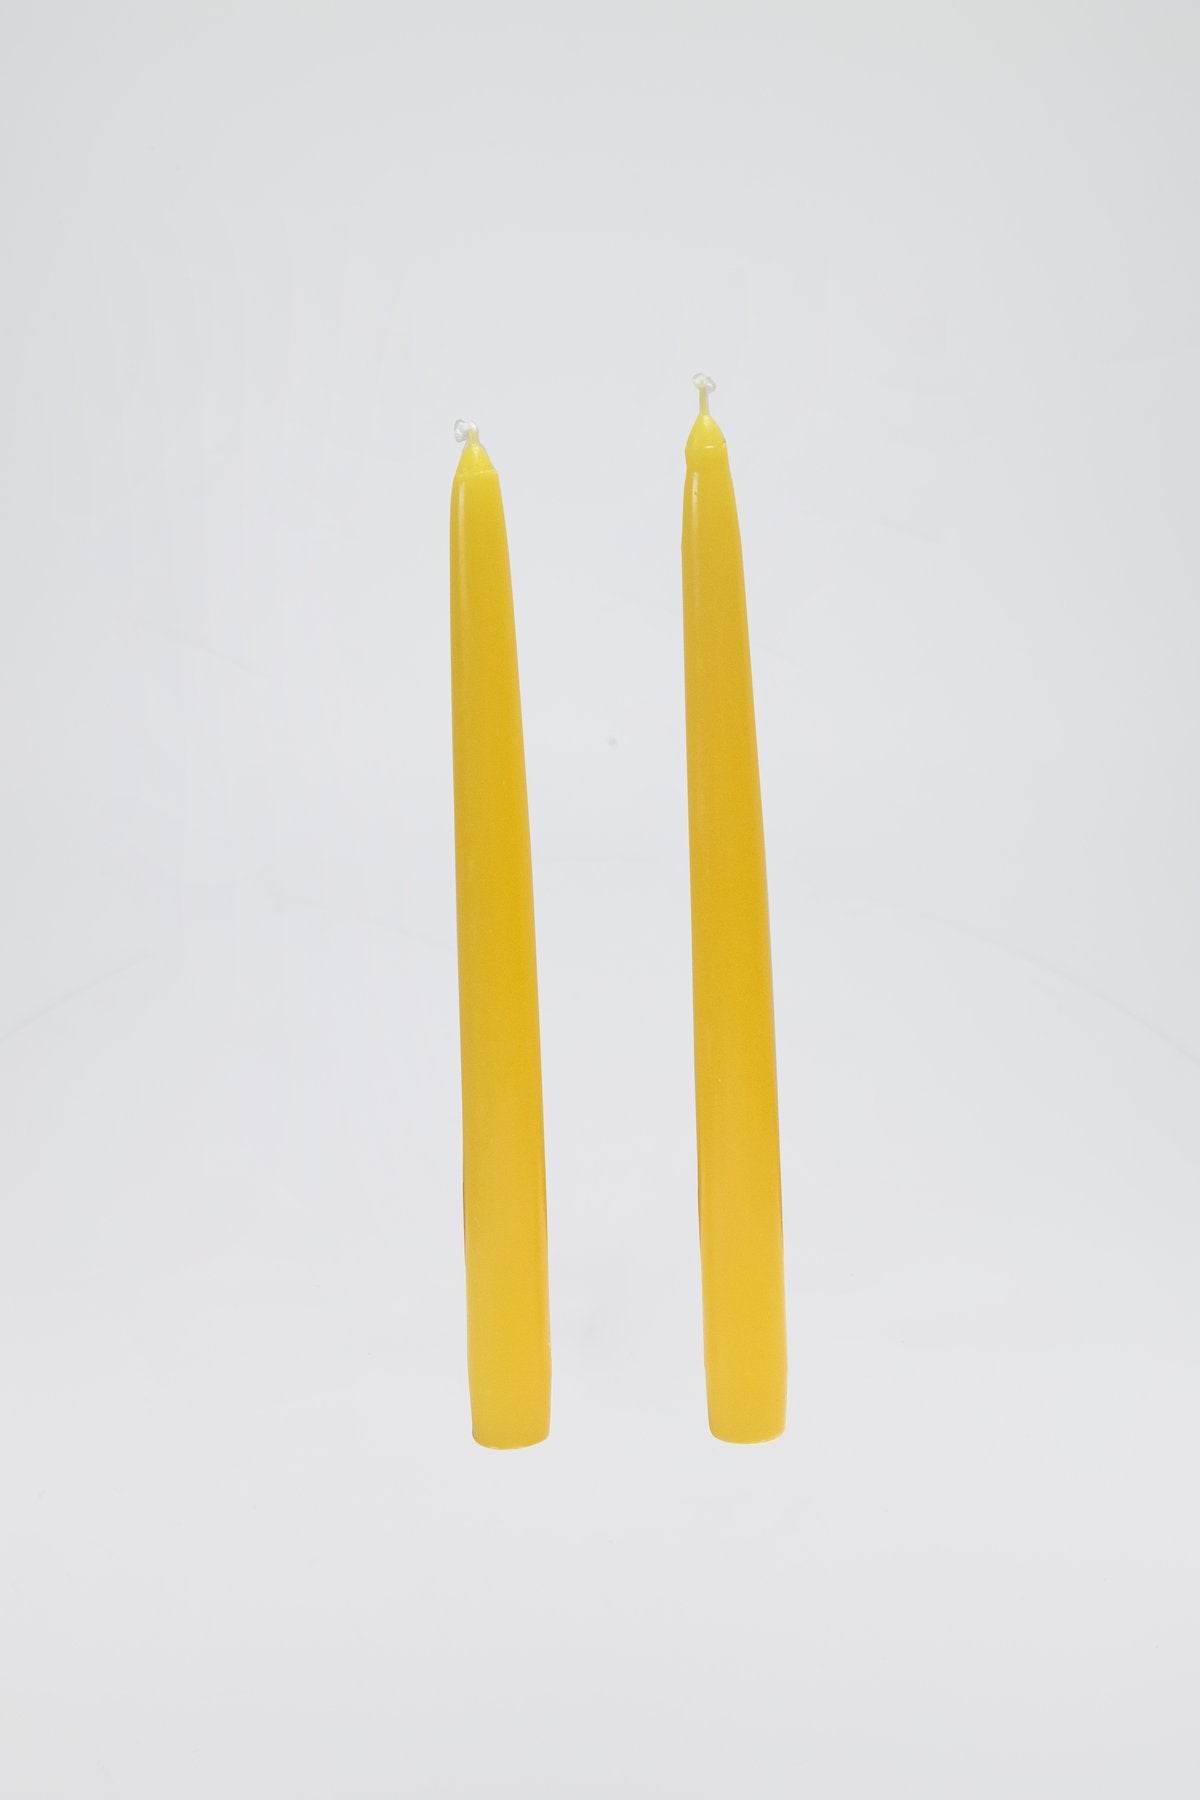 Dinner Candles, Sun Yellow, Pair